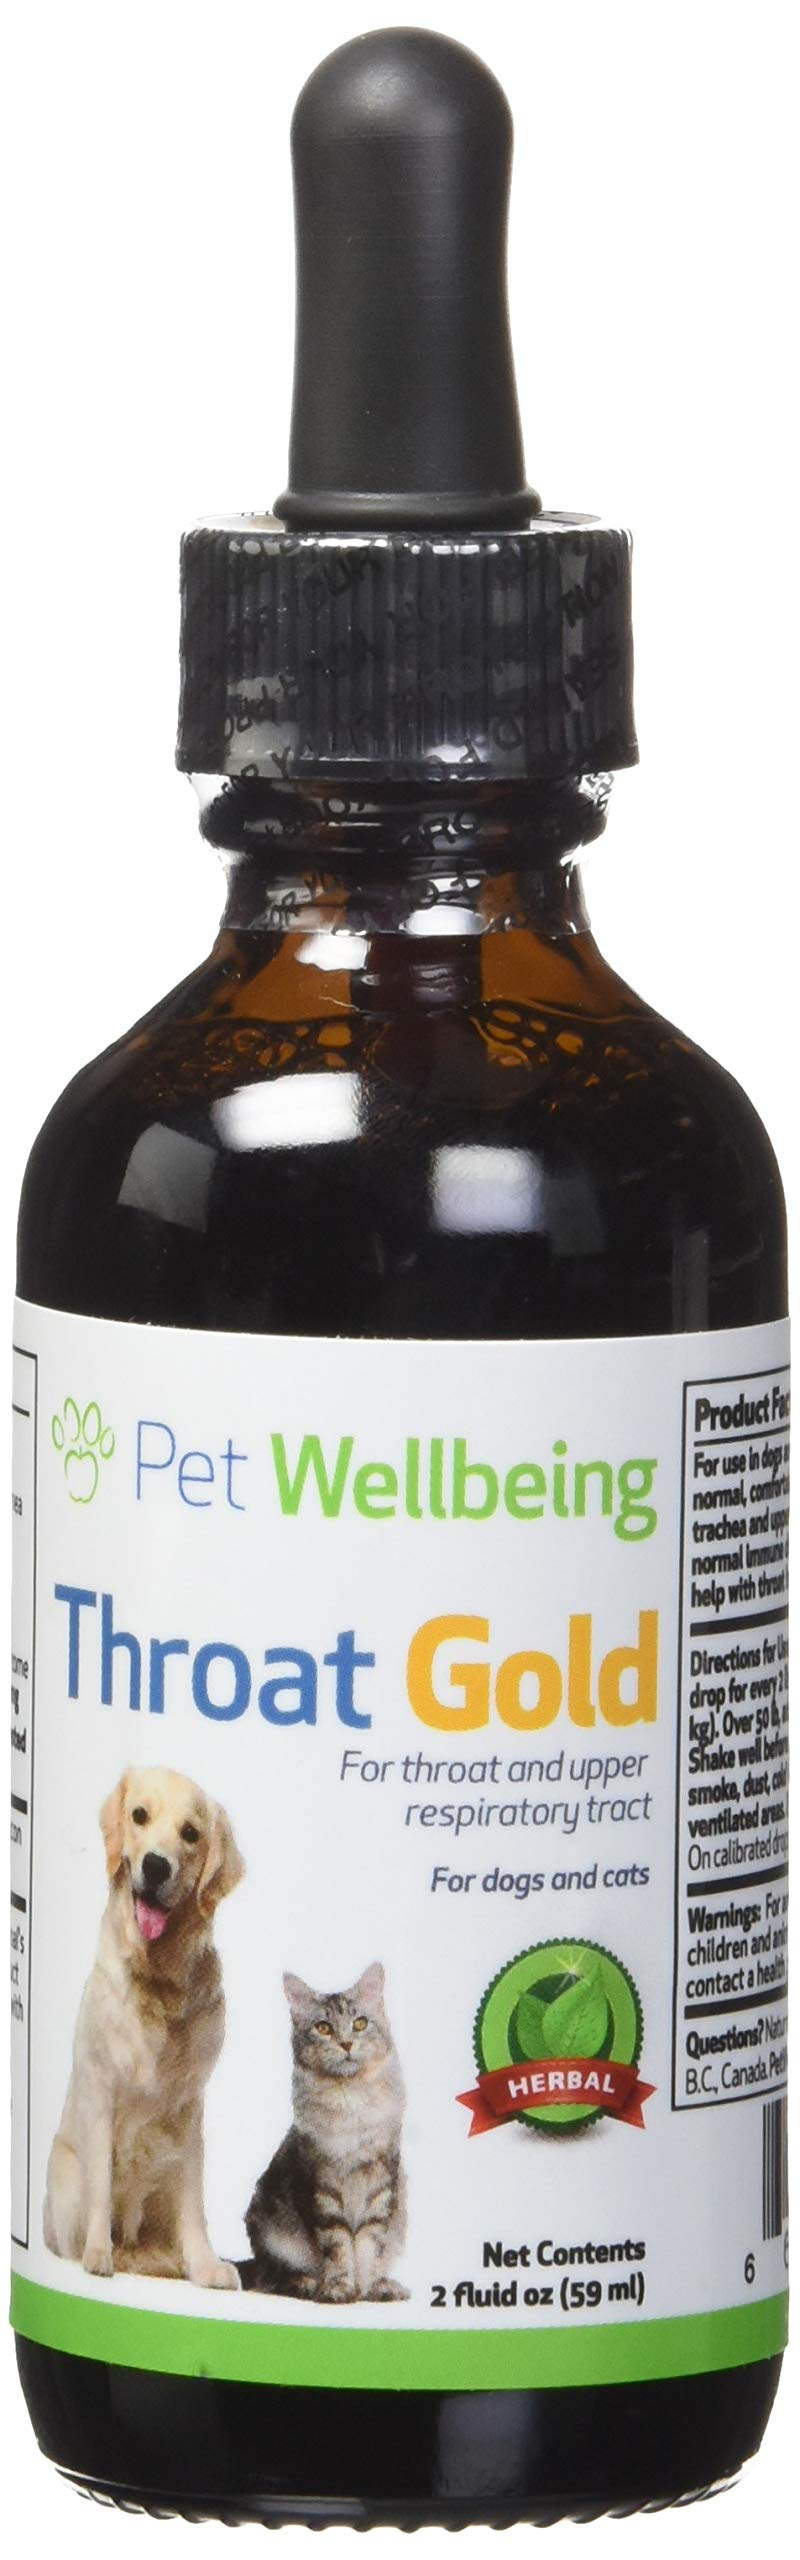 Pet Wellbeing Throat Gold for Dogs - Natural Herbal Cough, Throat and Respiratory Support for Canines - 2 oz (59ml) by Pet Wellbeing